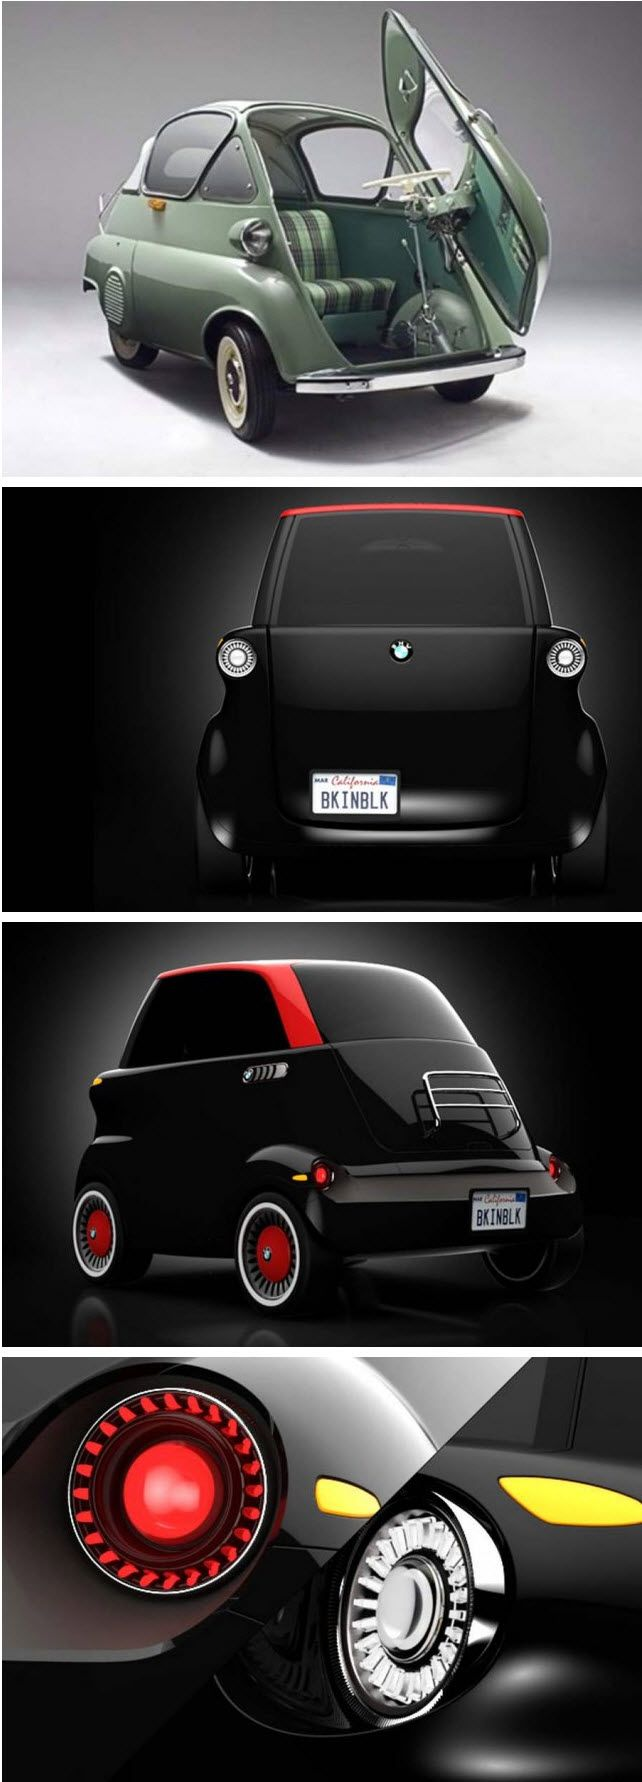 worksheet Who Killed The Electric Car Worksheet best 25 small cars ideas on pinterest s car vehicle and esetta electric inspired by the legendary bmw isetta